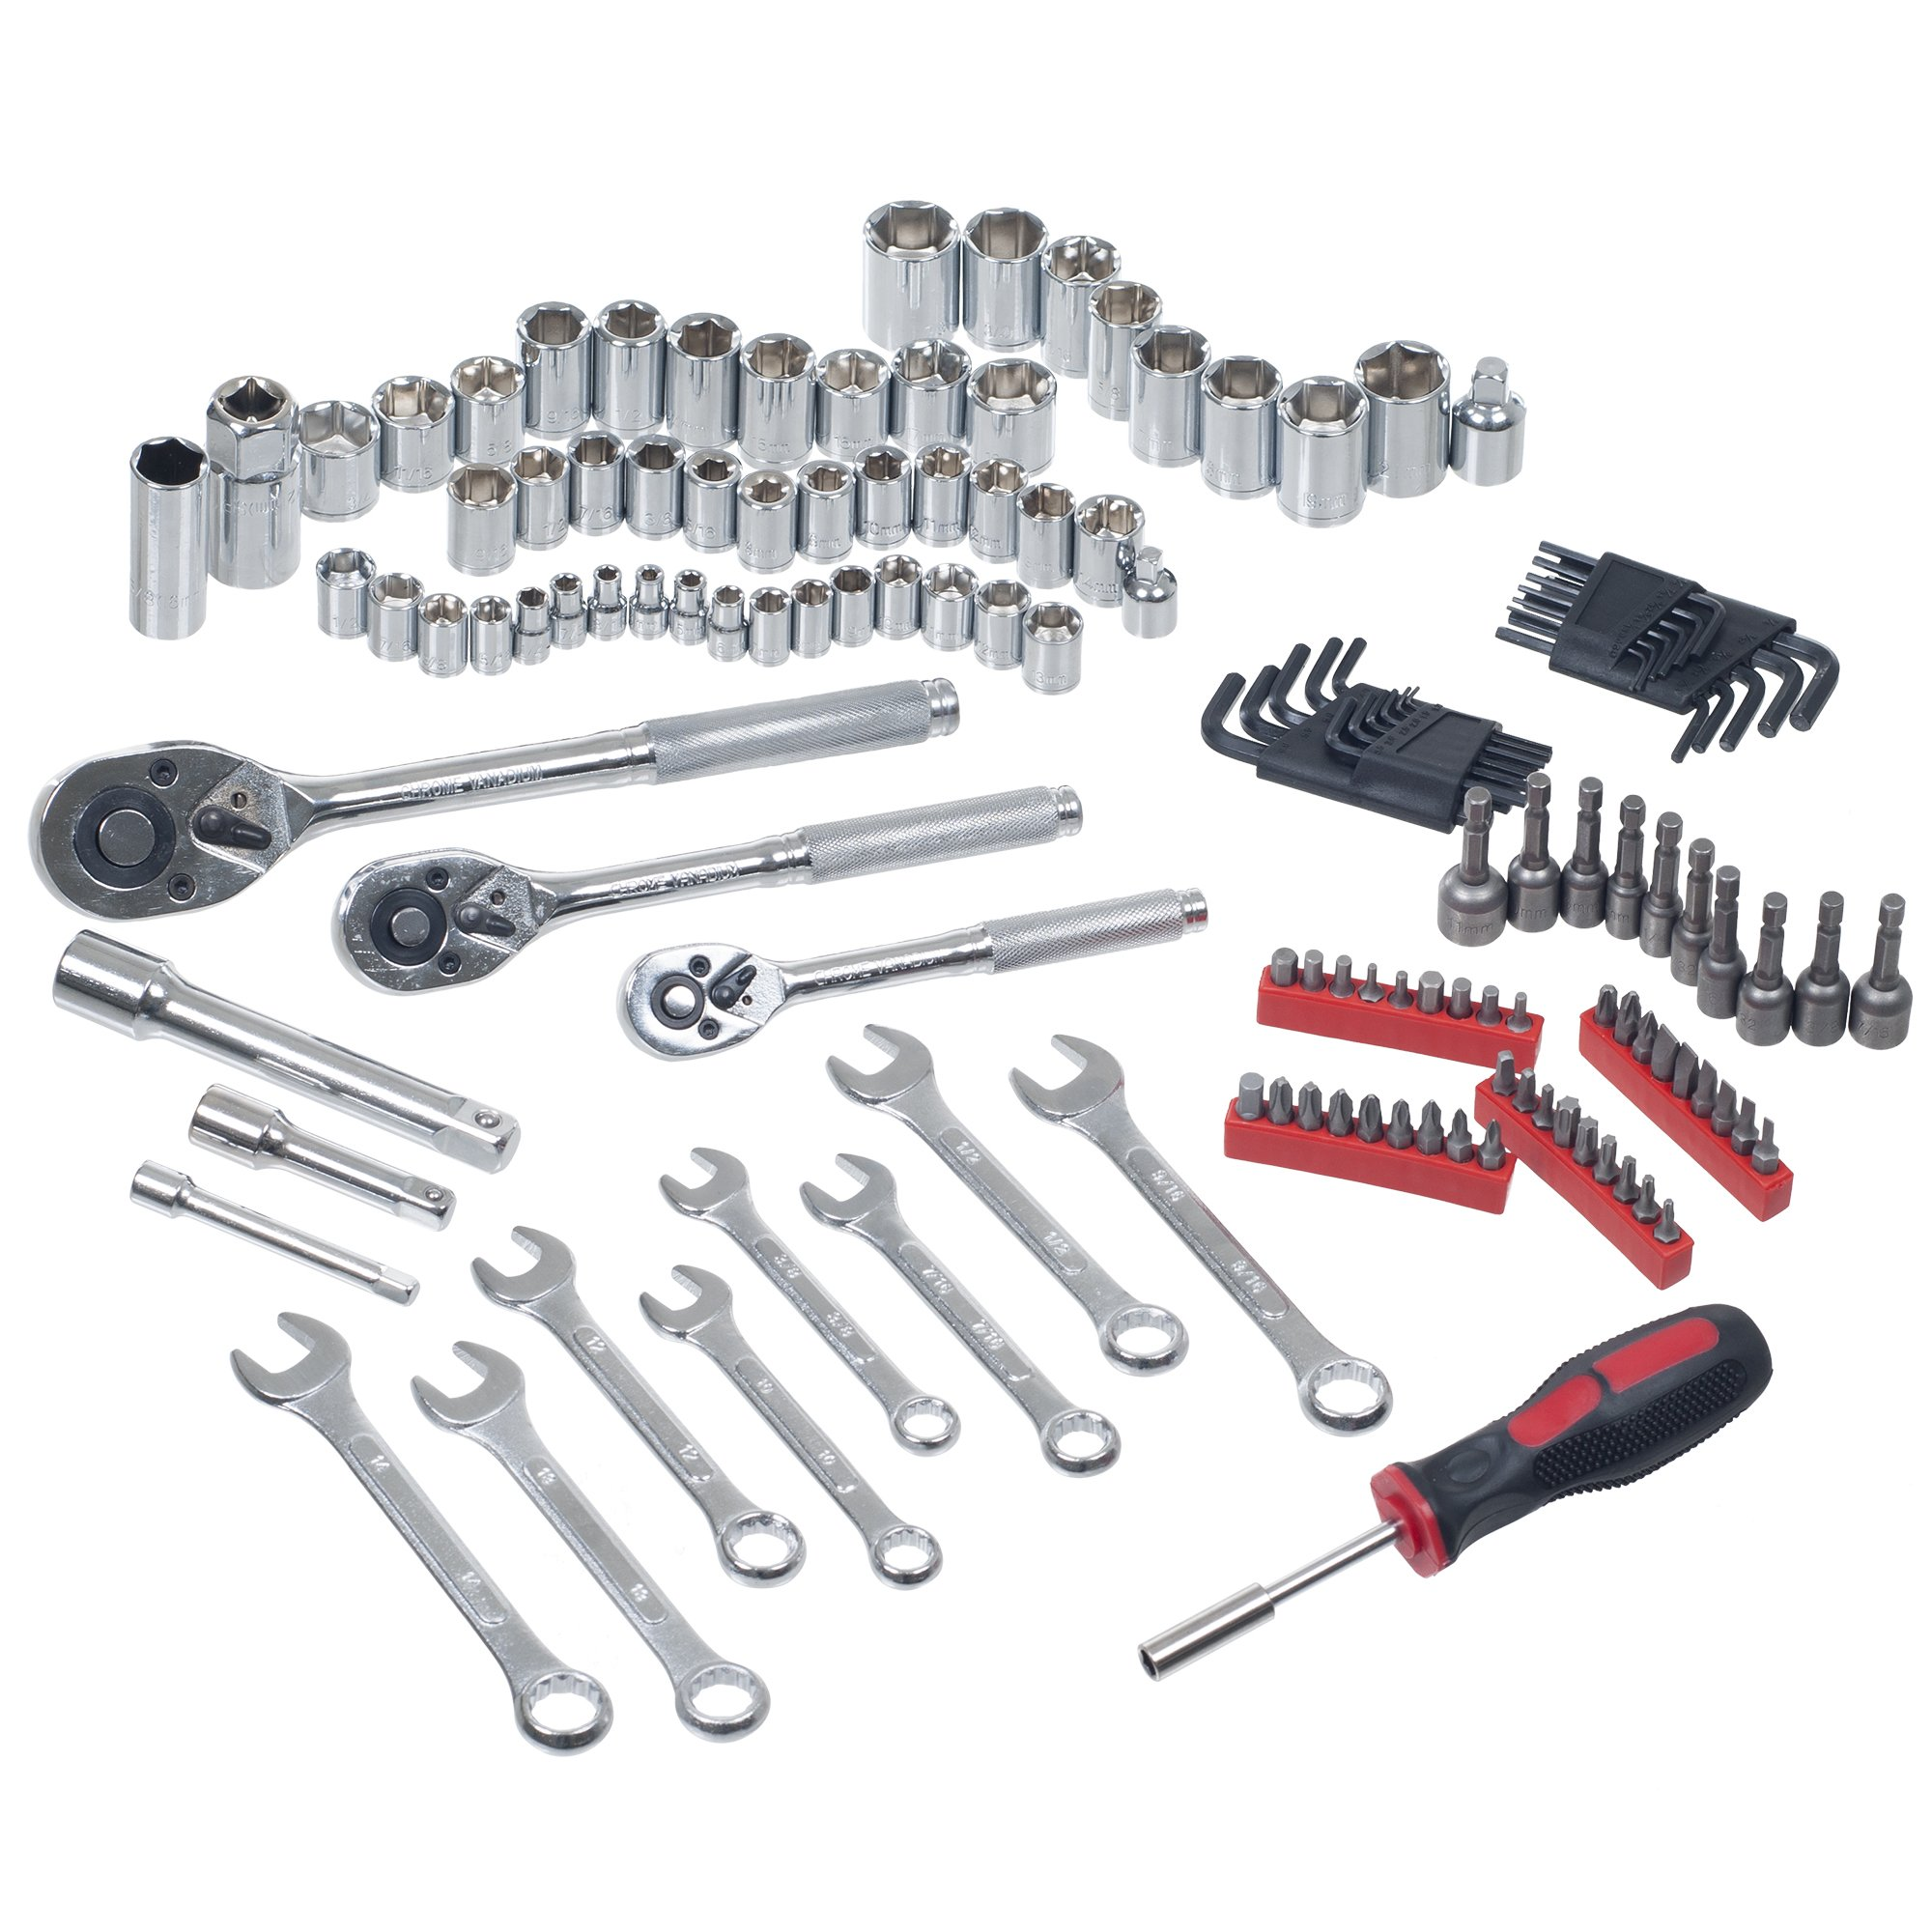 Mechanic's Tool Set- 135 Piece by Stalwart, Hand Tool Set Includes – Screwdriver, Wrench, and Ratchet Set (Great for the Home, Garage, or Car) by Stalwart (Image #2)